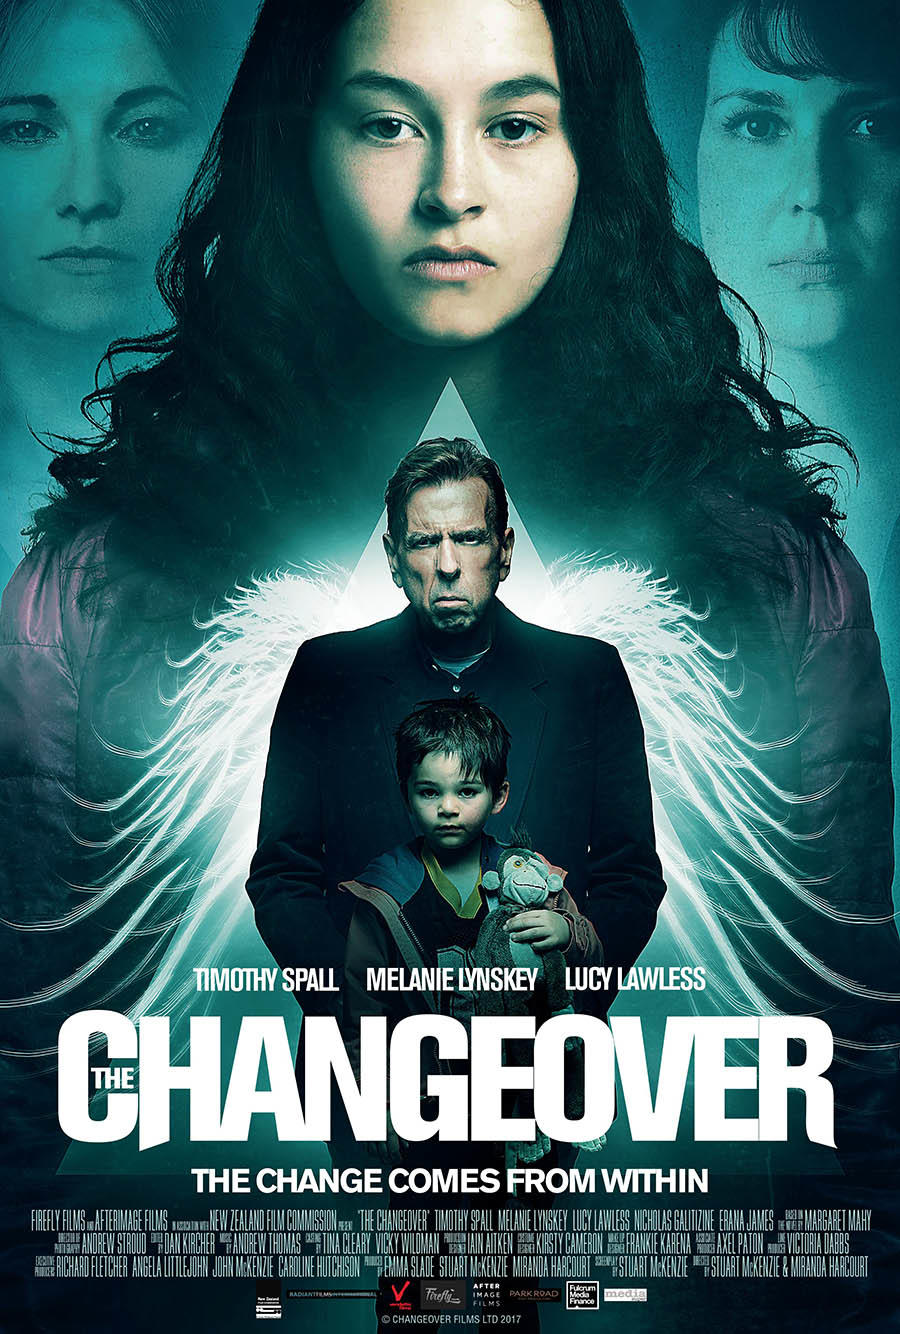 The Changeover poster art